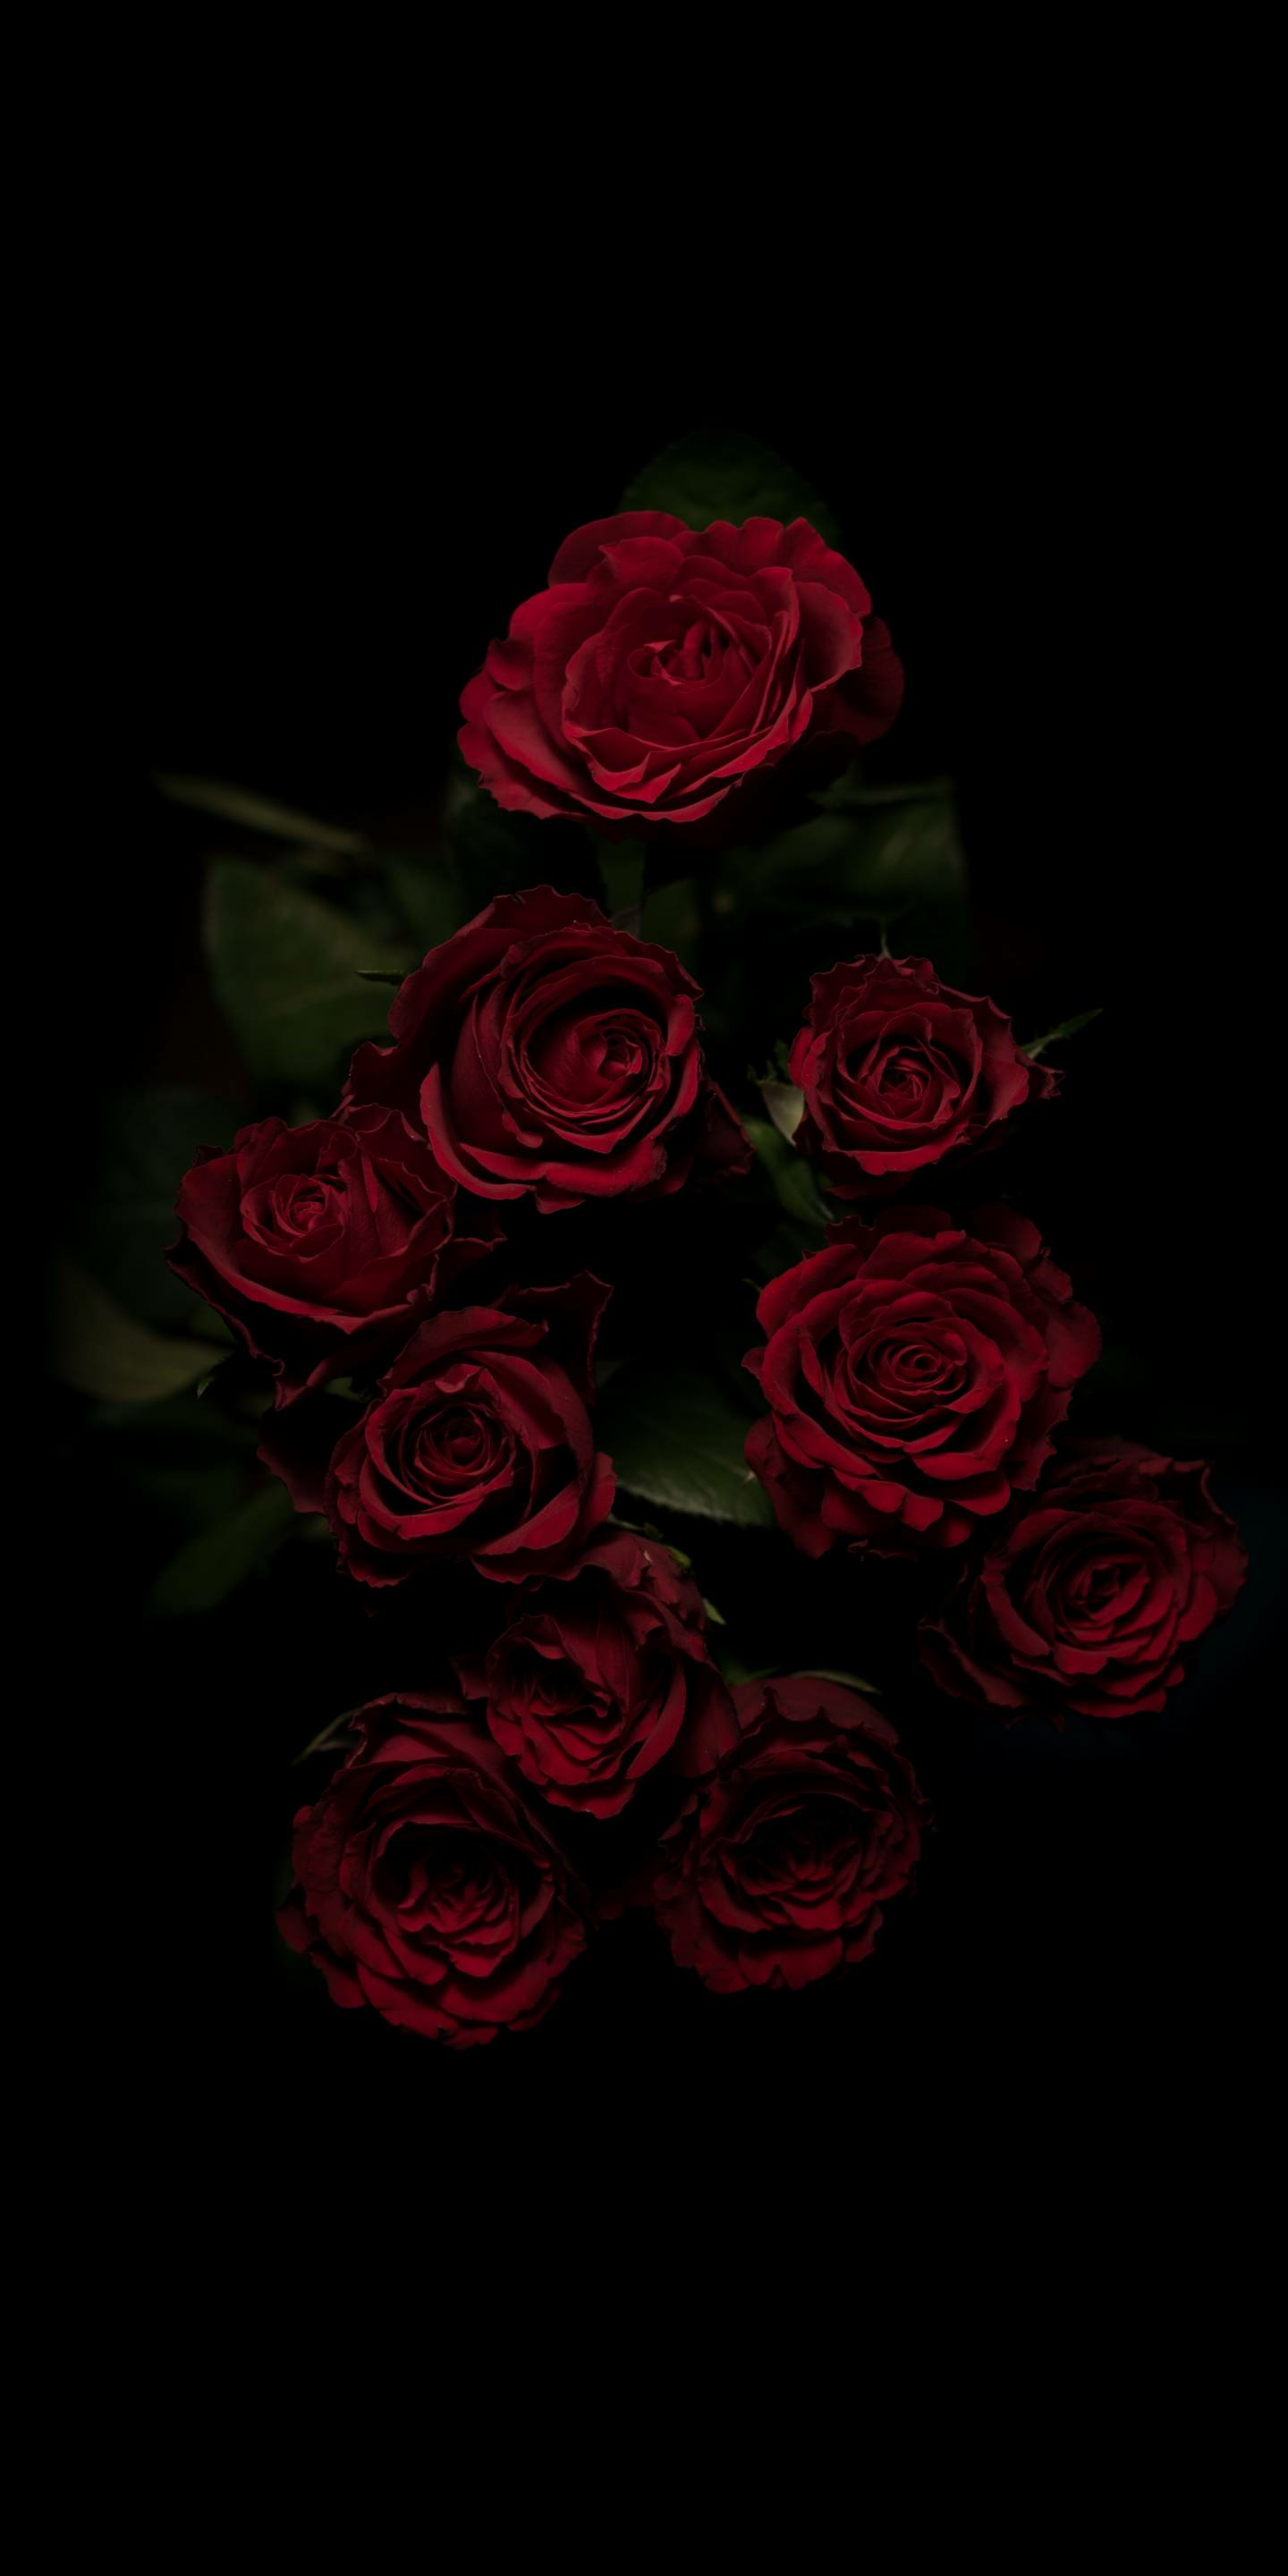 49 Red Roses Aesthetic Wallpapers On Wallpapersafari